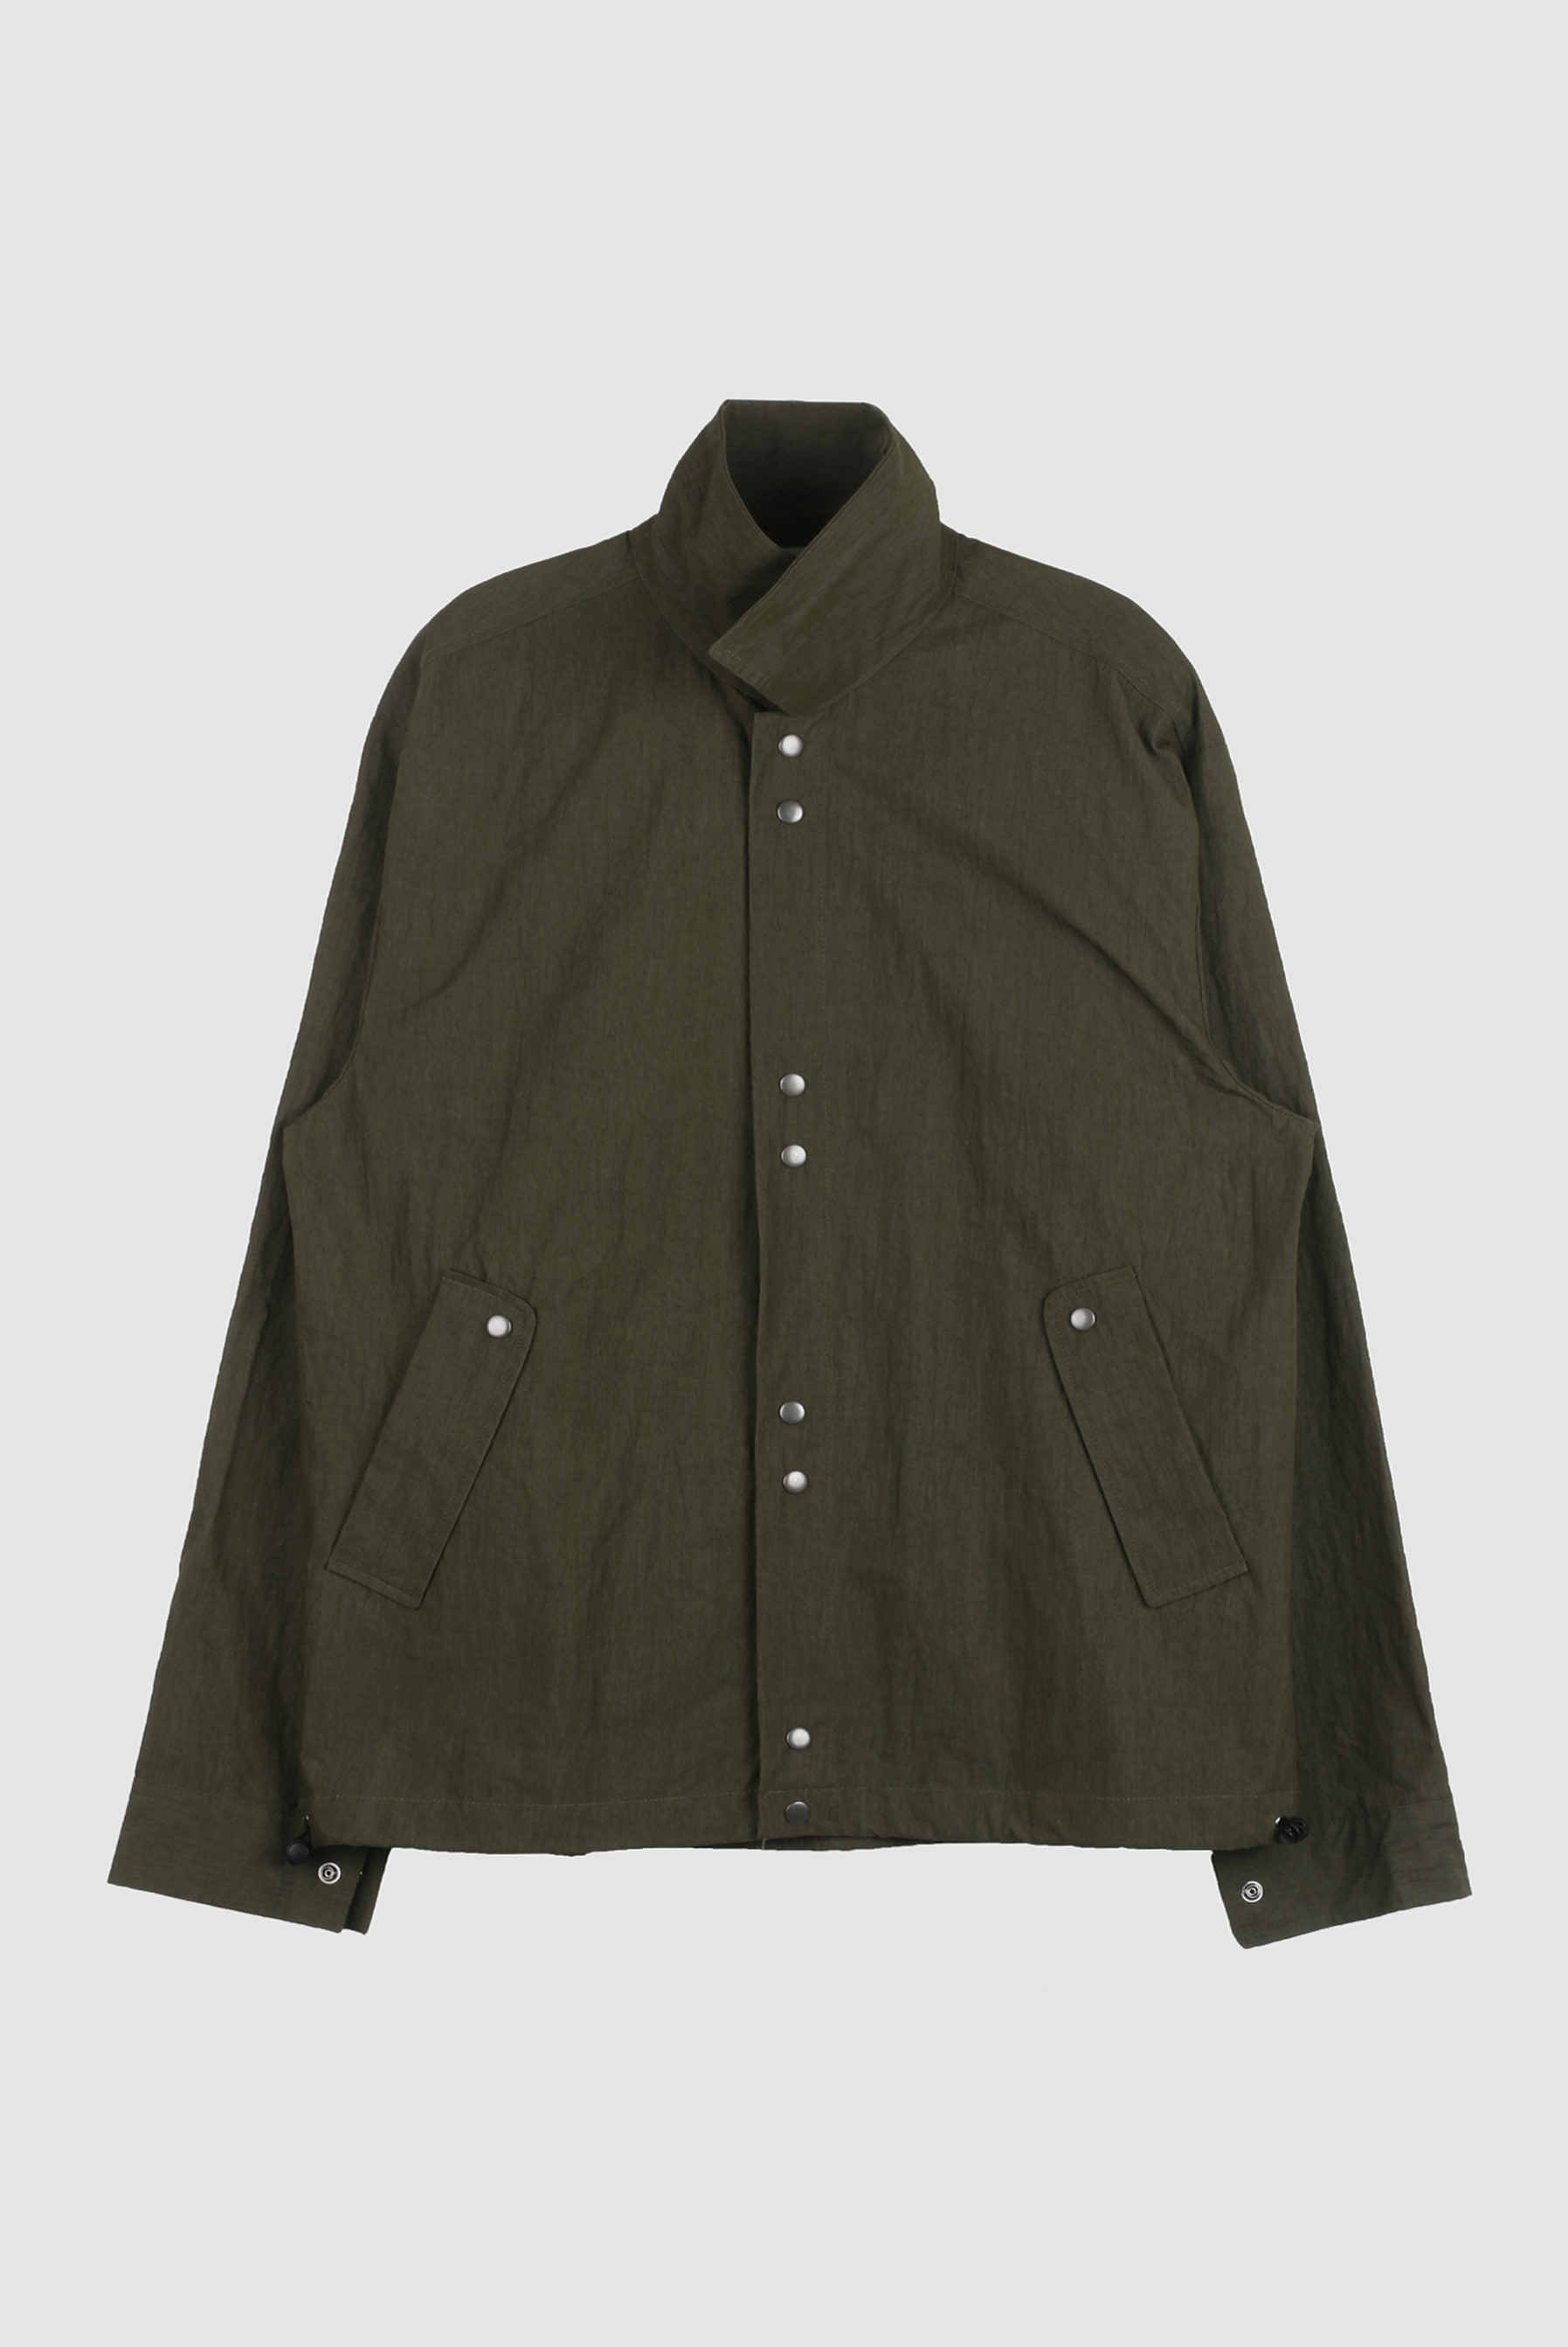 Button_String Nylon_Jacket